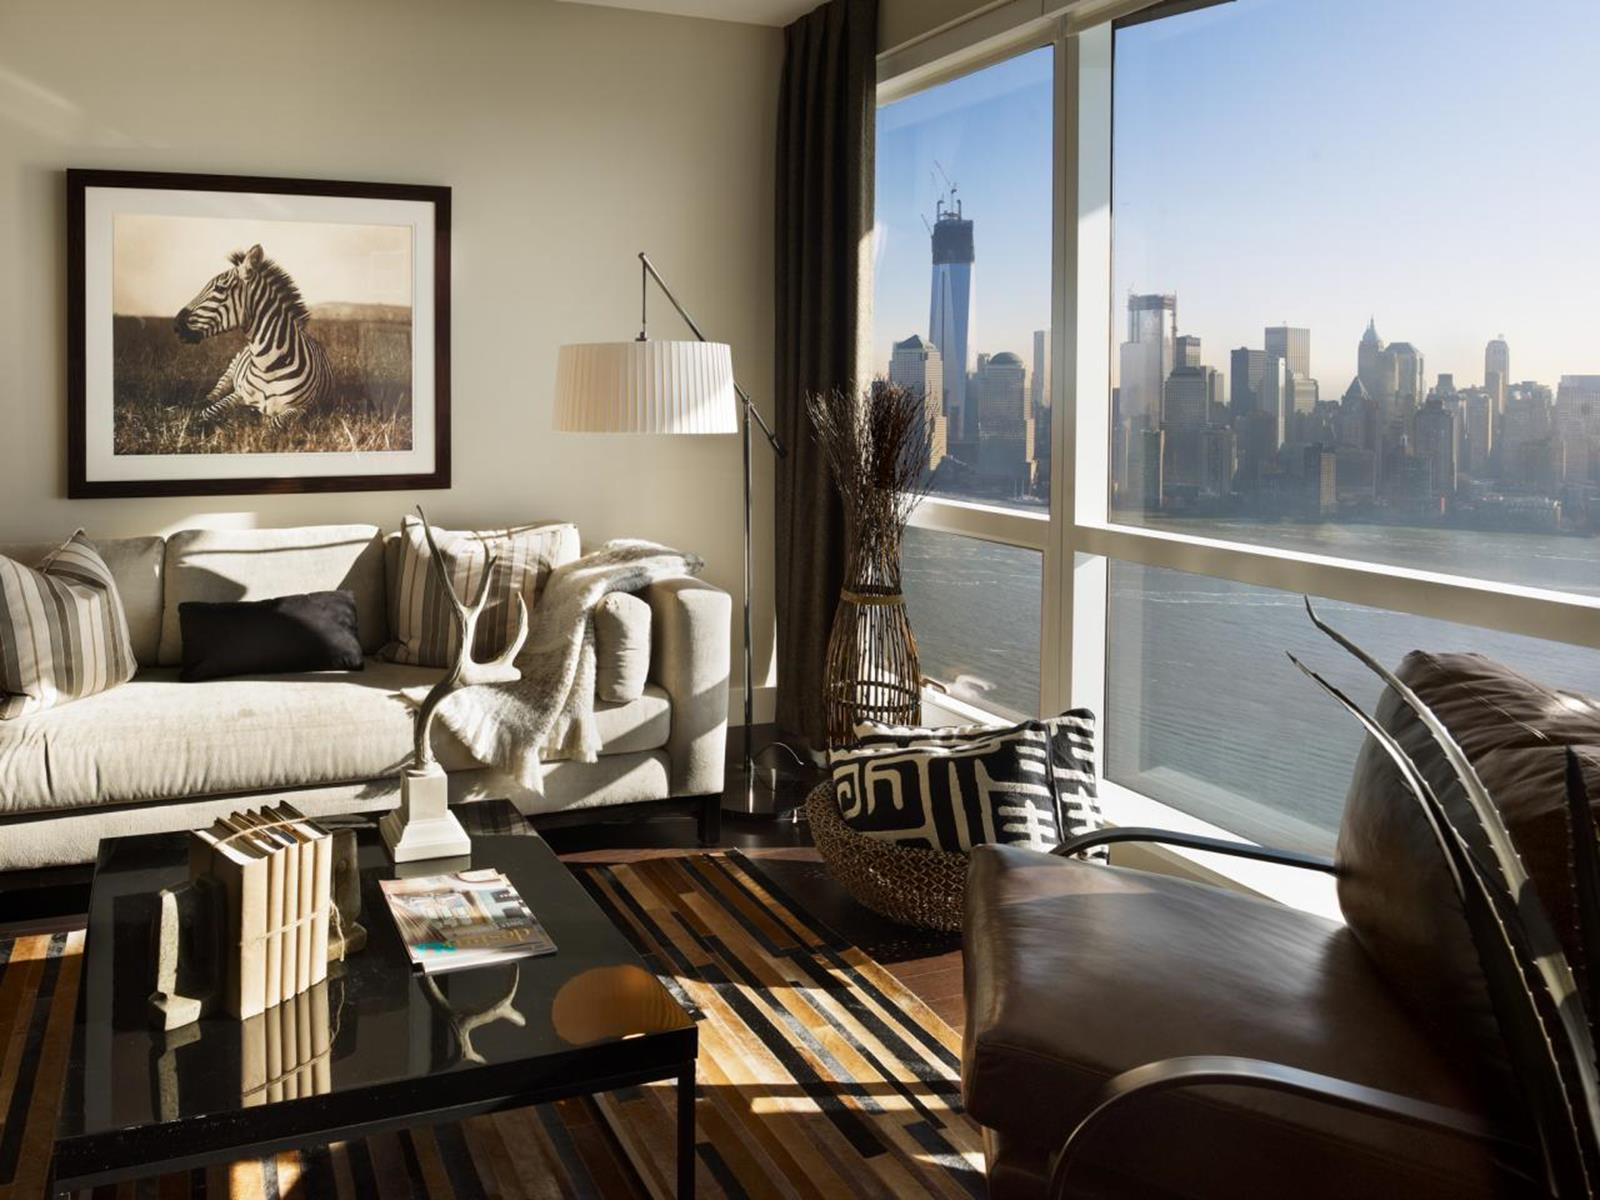 City Chic Living Room Decorating Ideas On a Budget 37